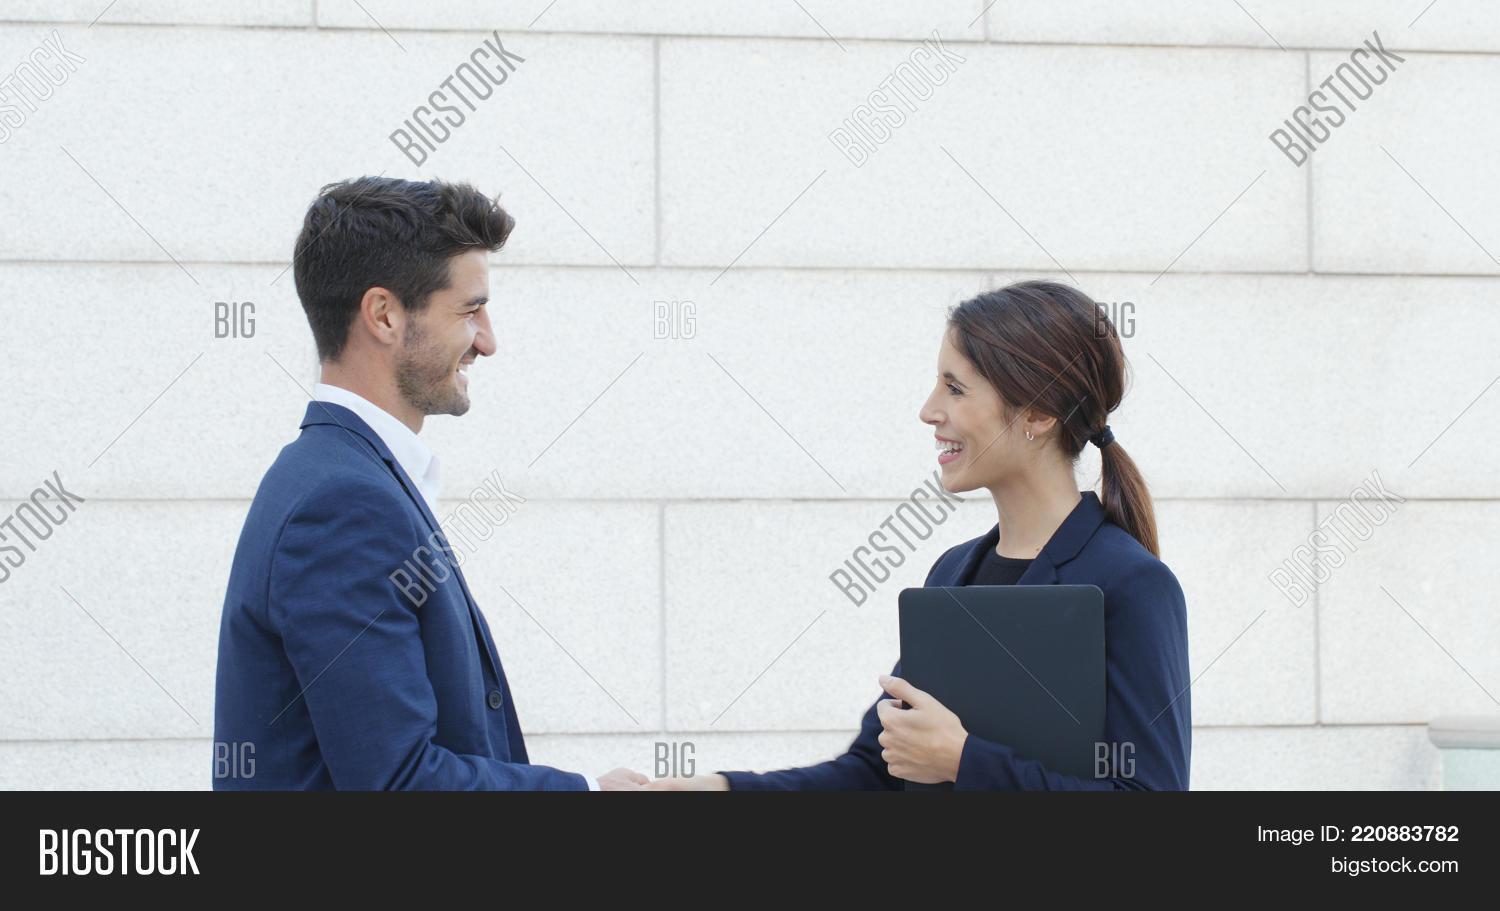 Business People Image Photo Free Trial Bigstock